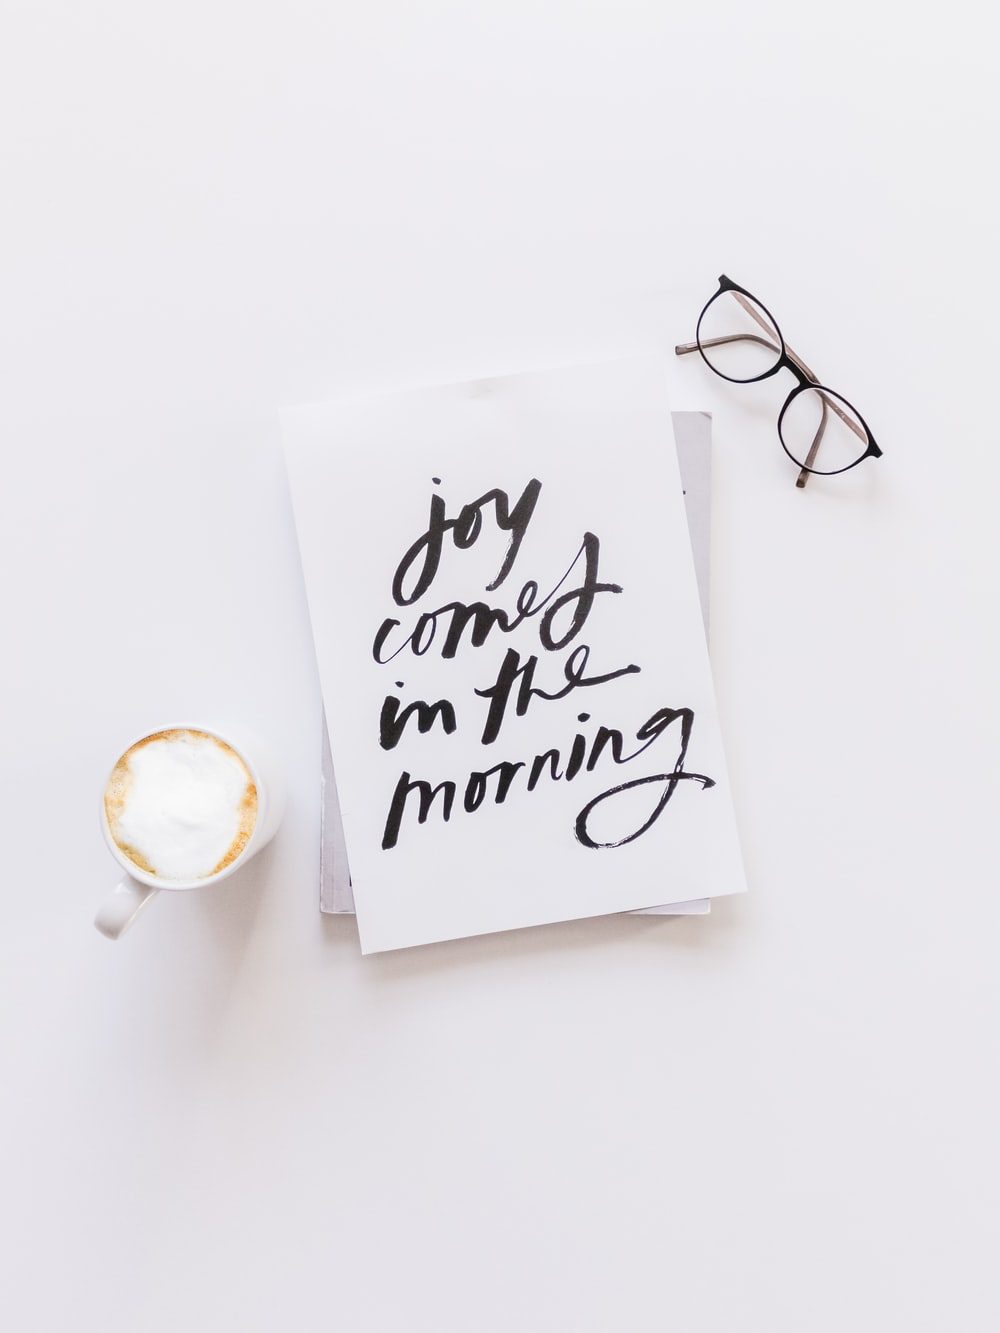 brown framed eyeglasses,latte, and joy comes in the morning note on white surface